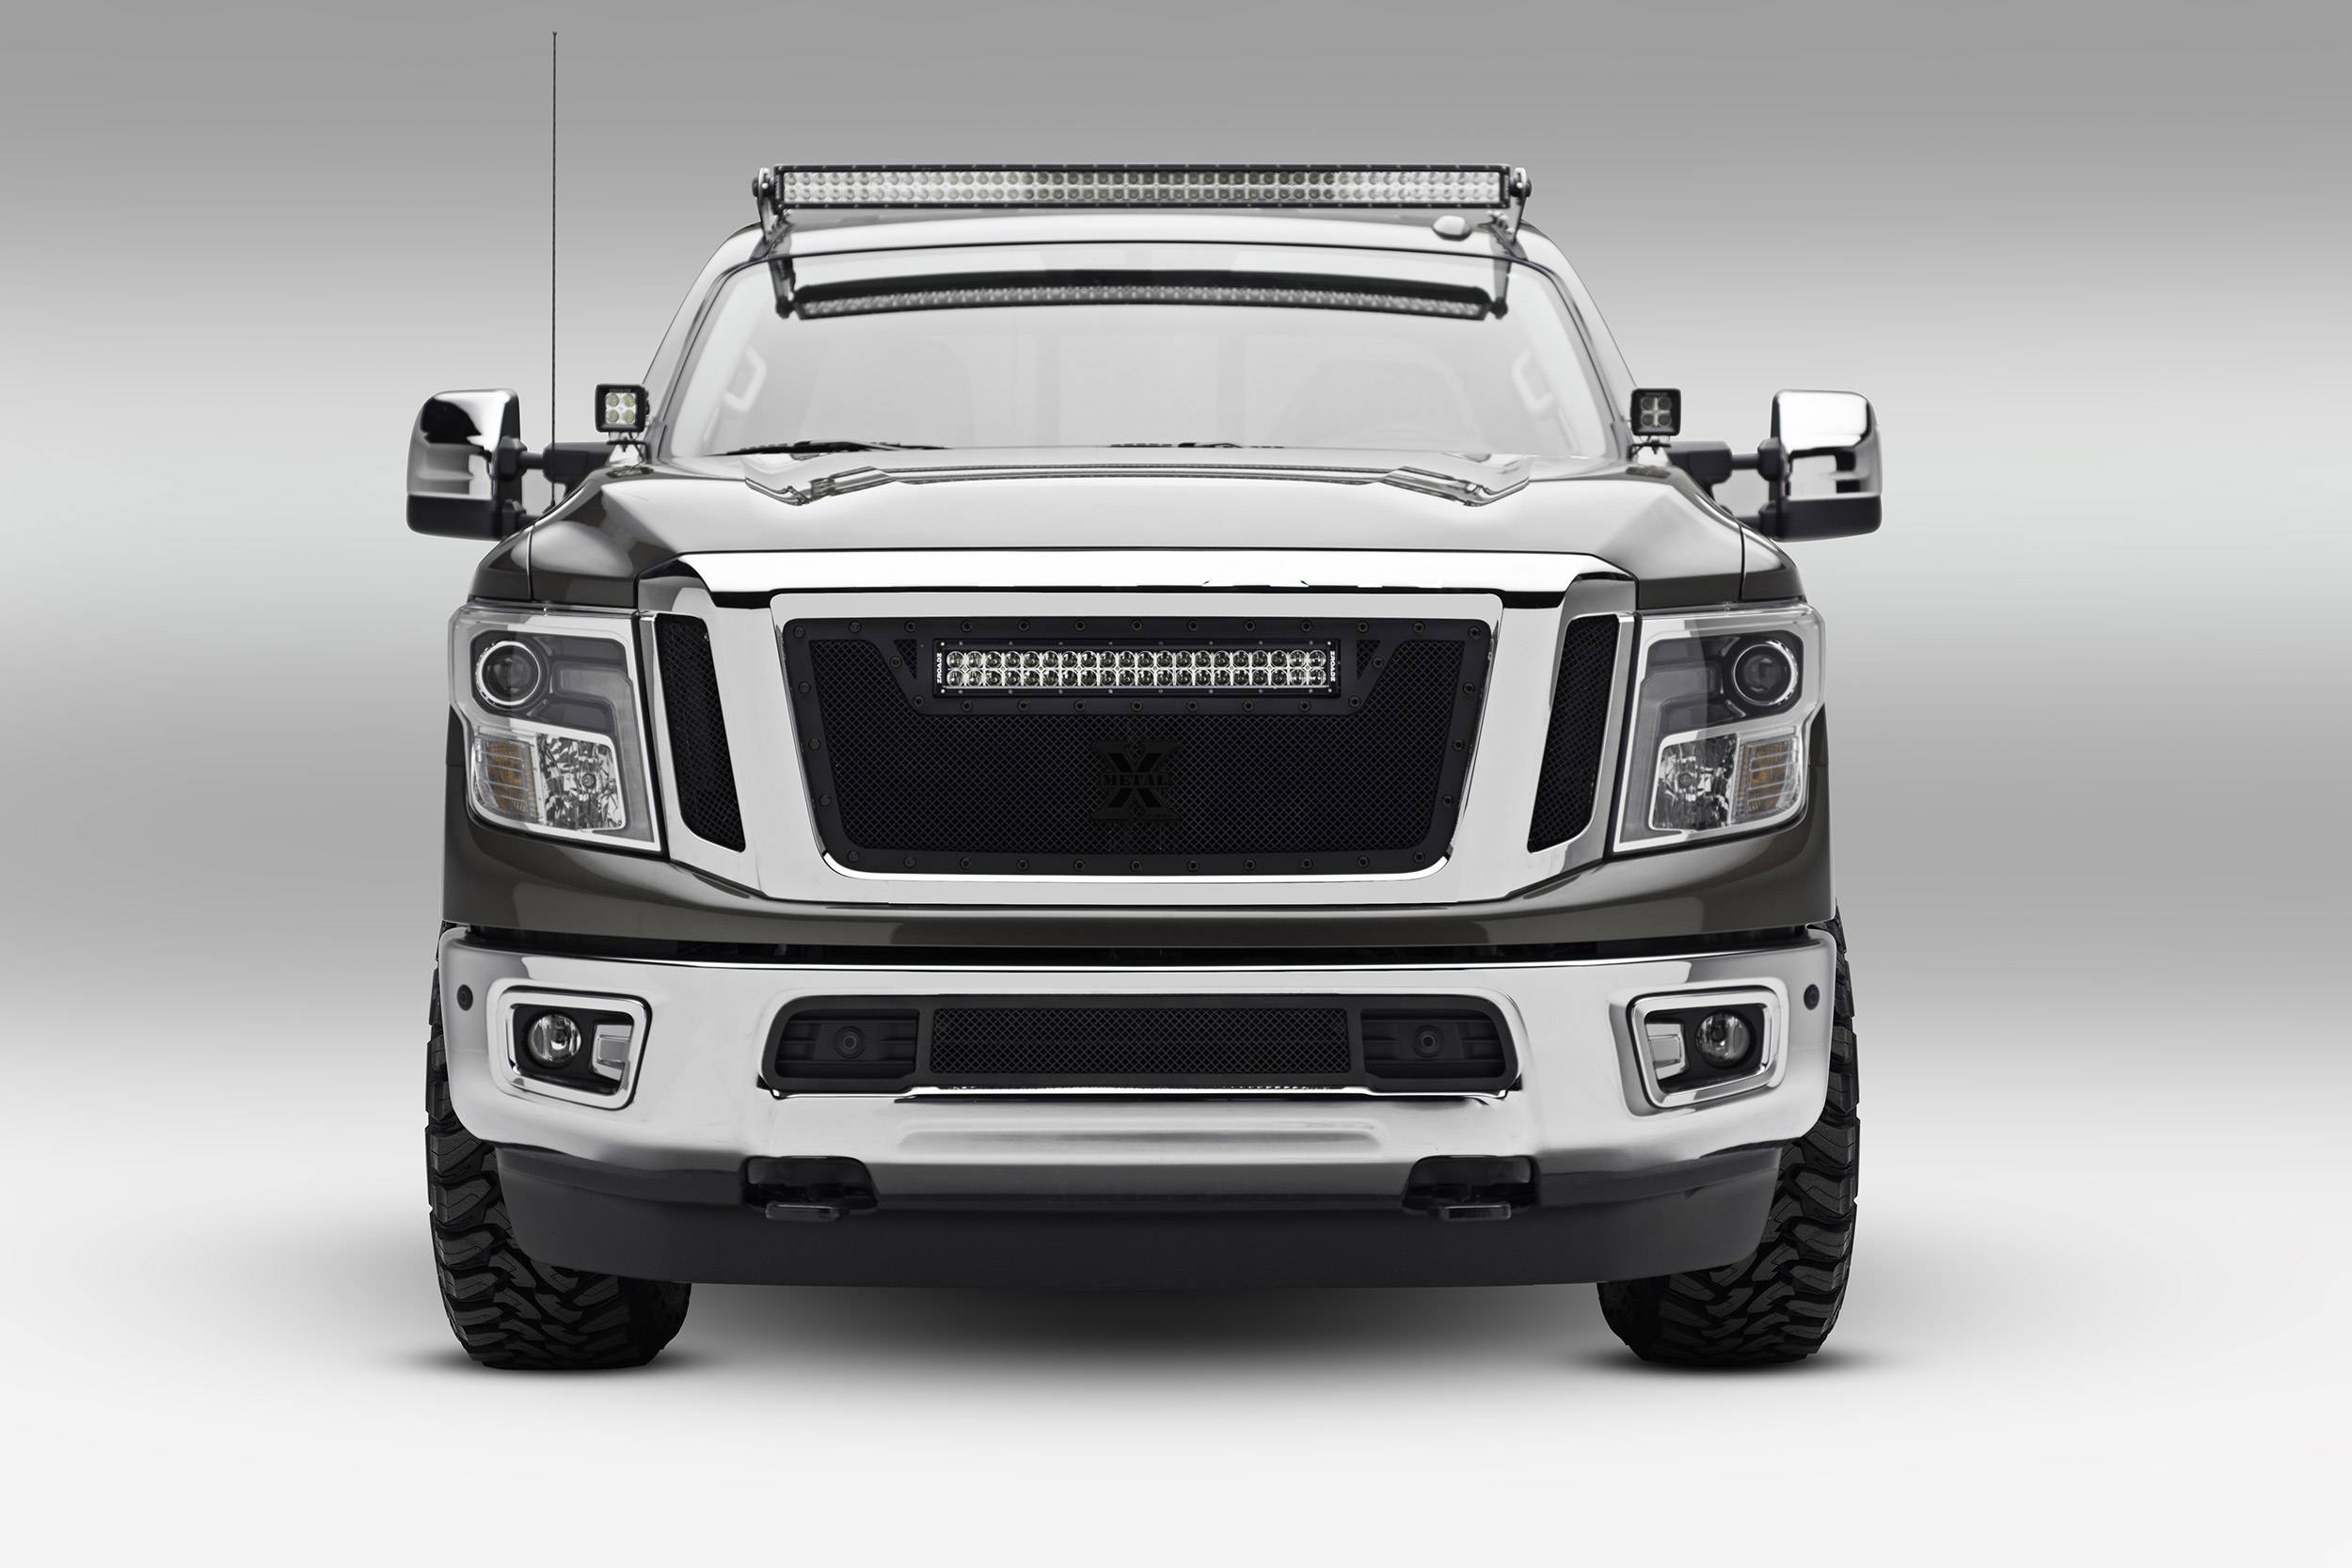 ZROADZ                                             - 2016-2019 Nissan Titan Front Roof LED Bracket to mount (1) 50 Inch Staight LED Light Bar - PN #Z337181